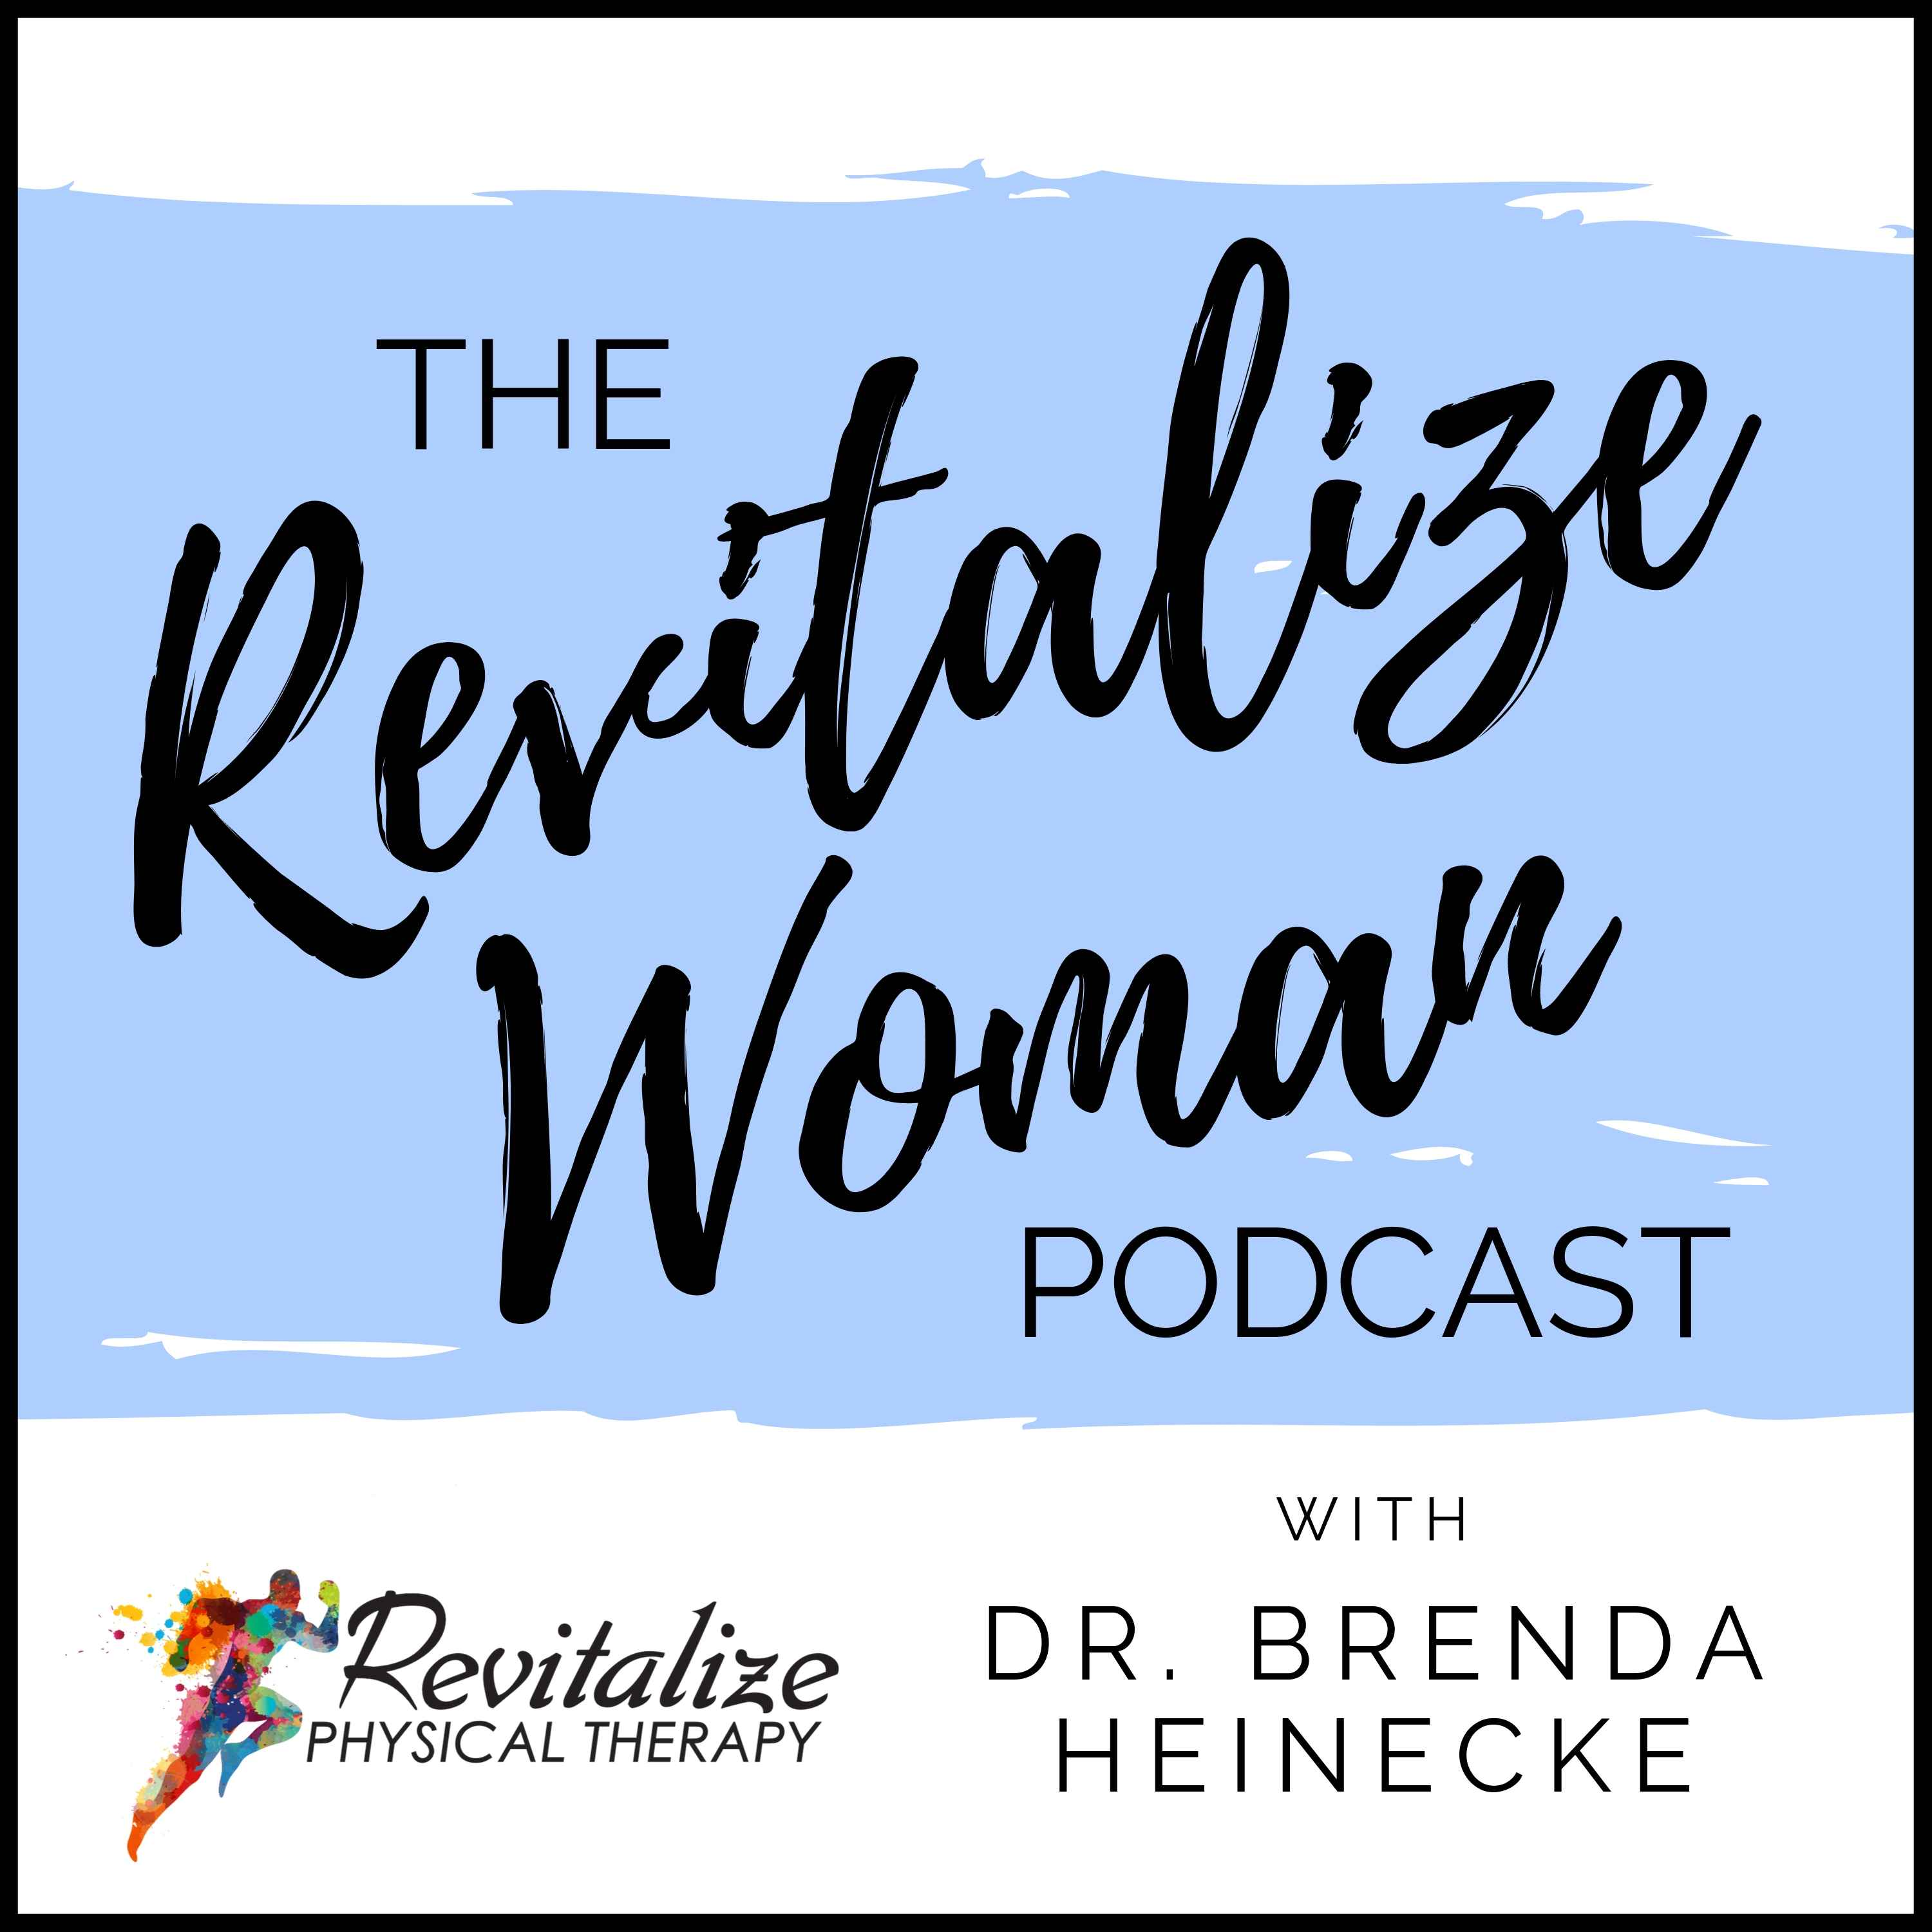 The Revitalize Woman Podcast